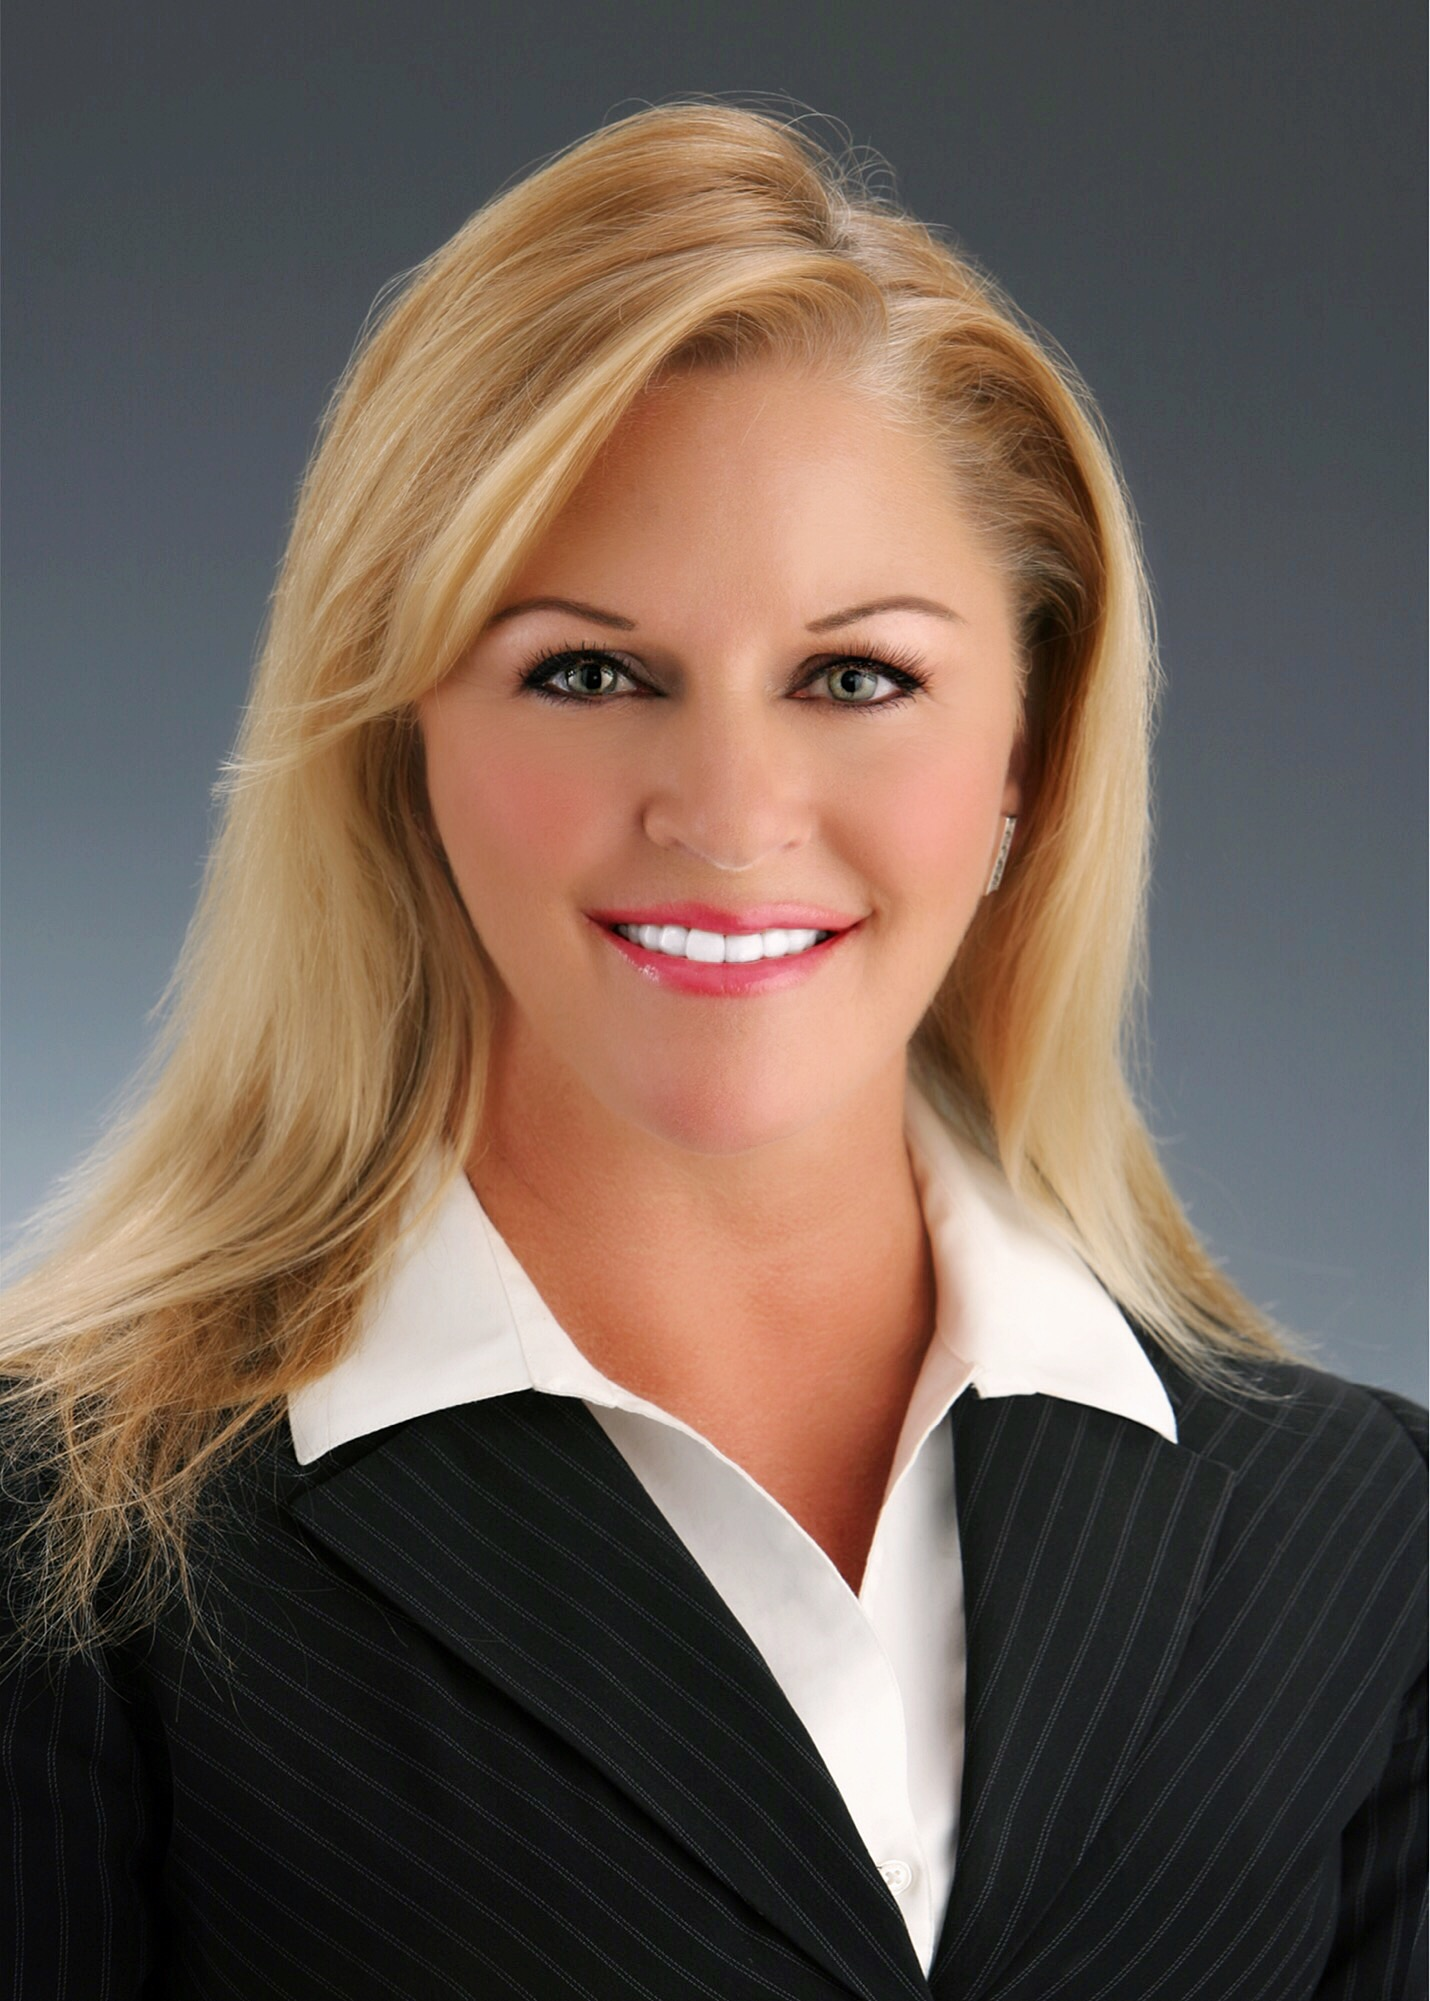 Melissa Snowden, Coastal Select Property Real Estate Agent